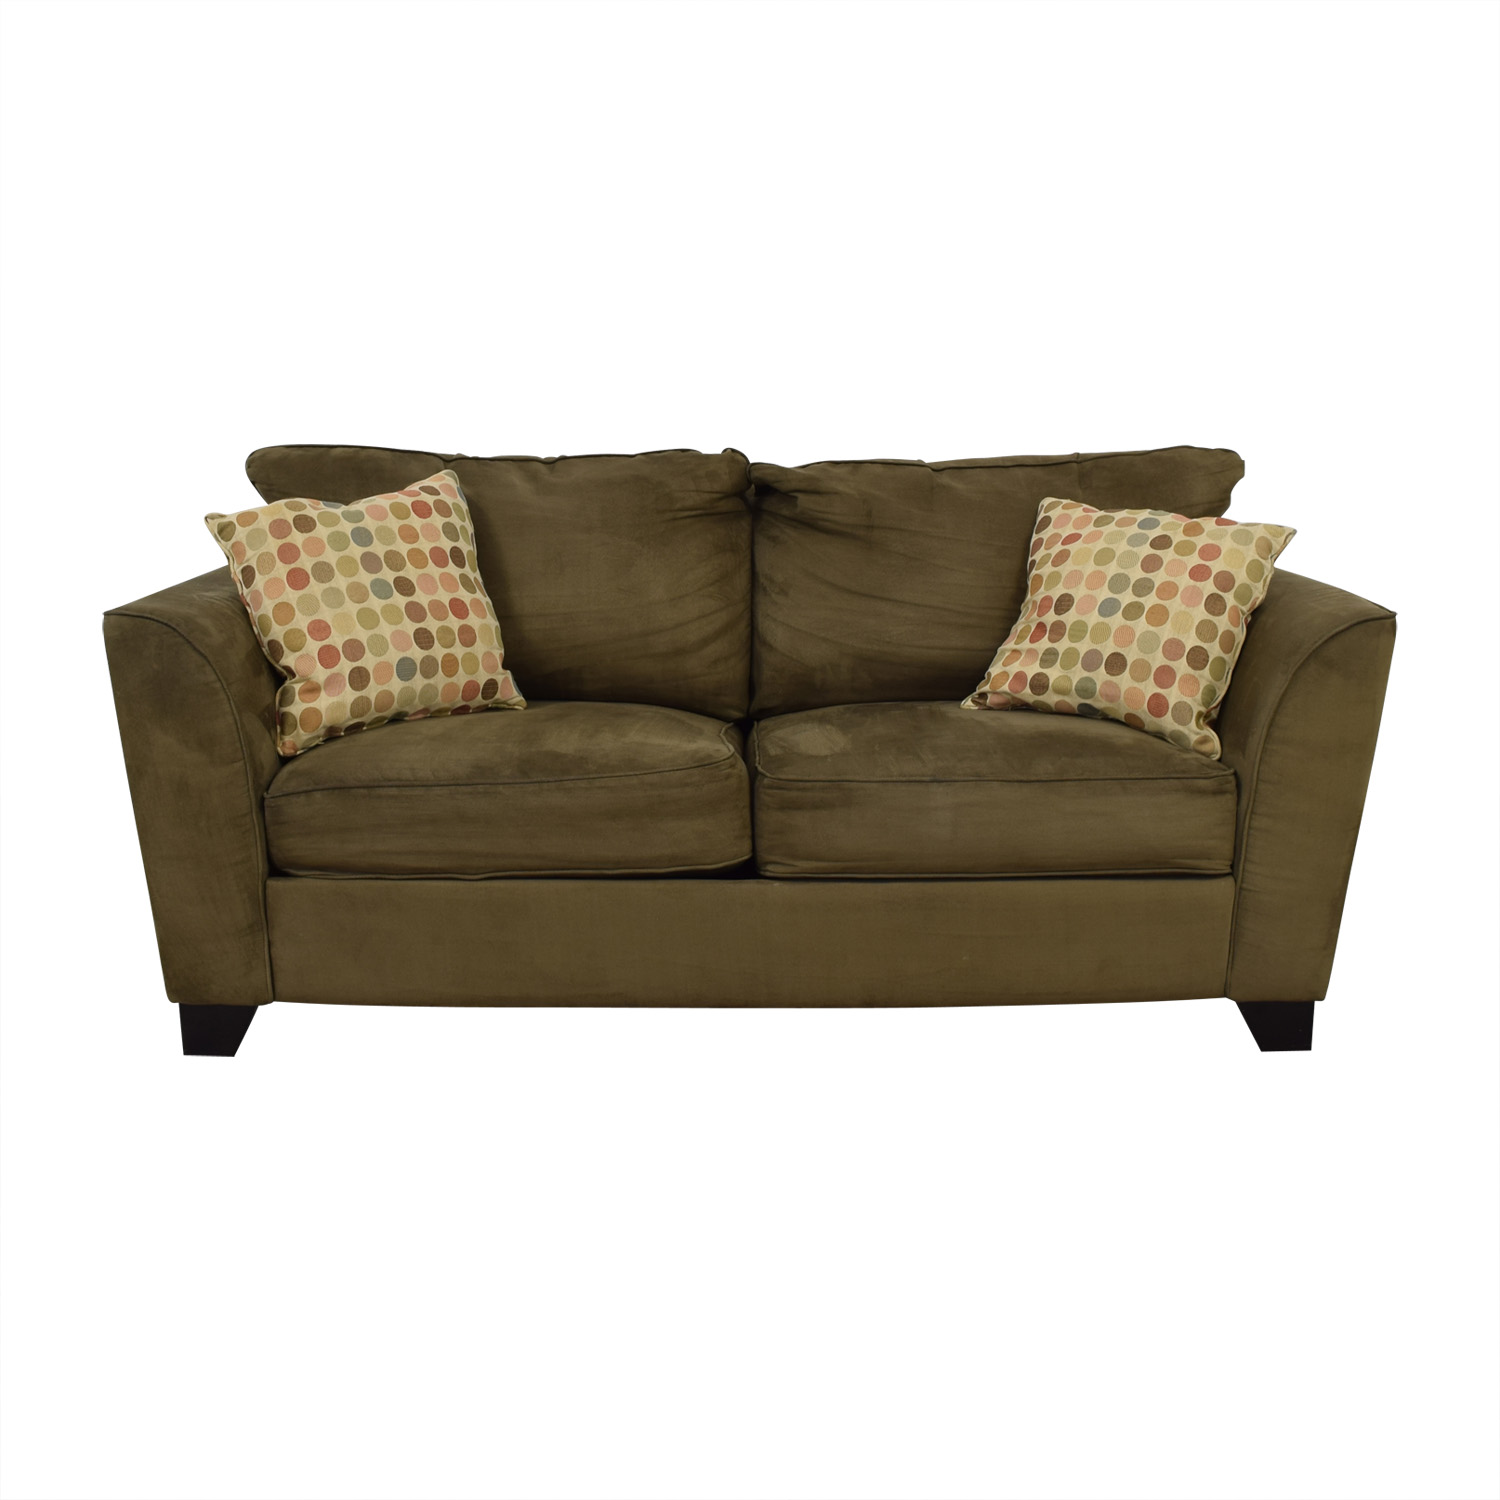 buy  Taft Furniture Modern Green Sofa online